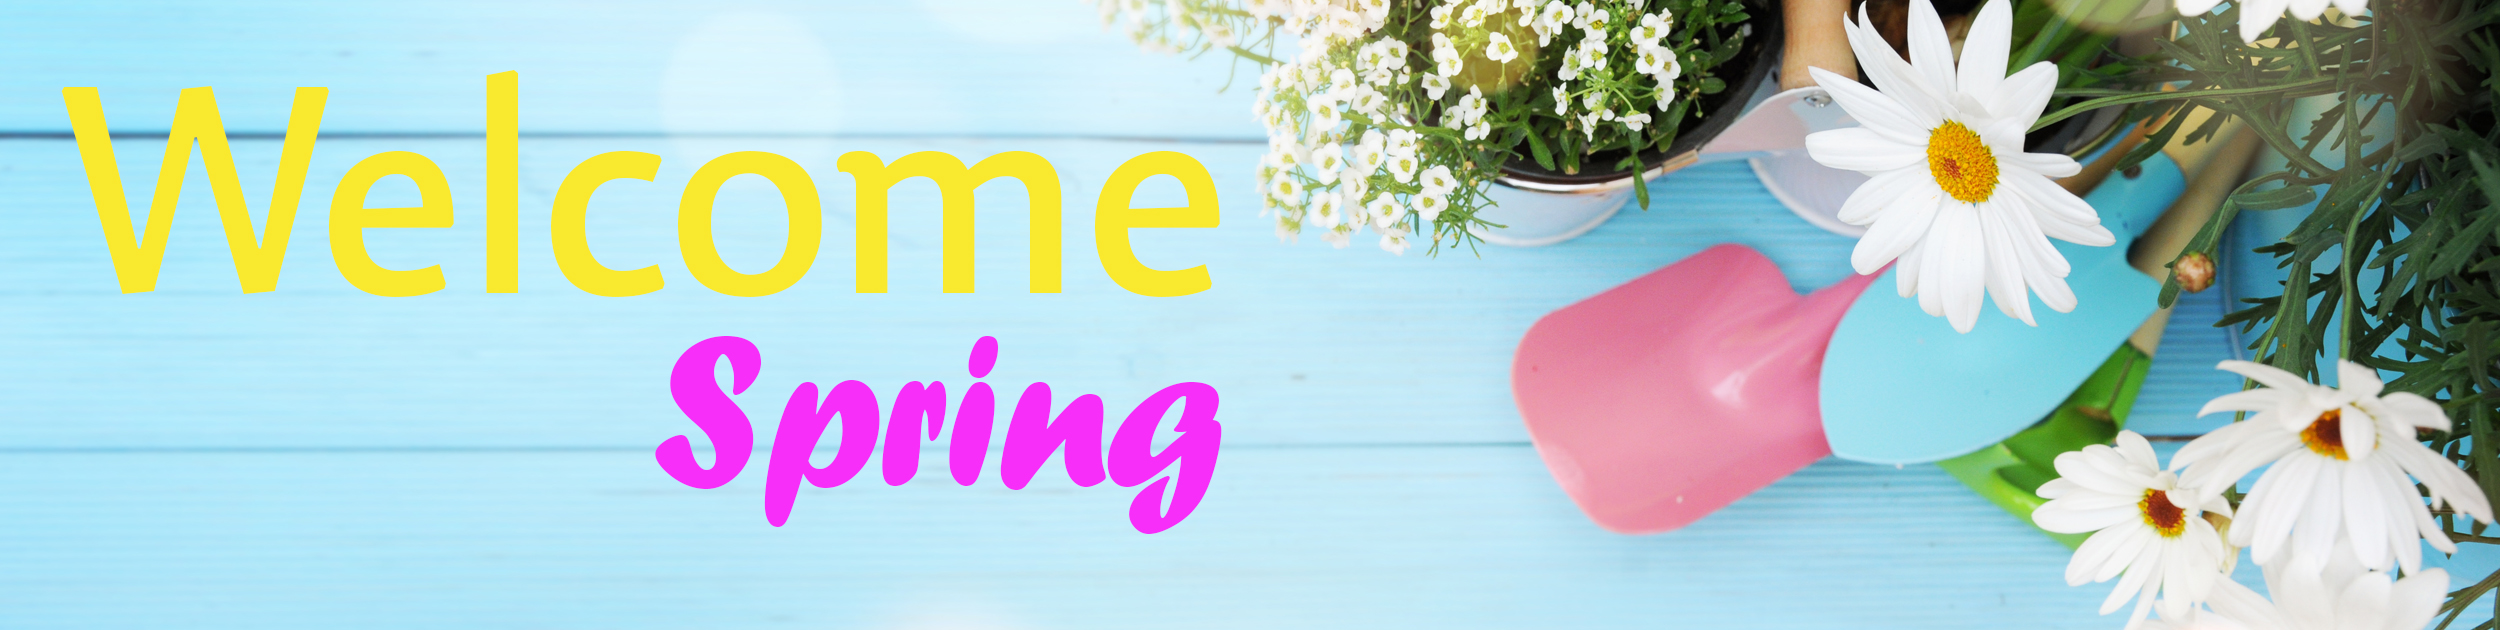 welcome Spring sign with daisies and garden tools